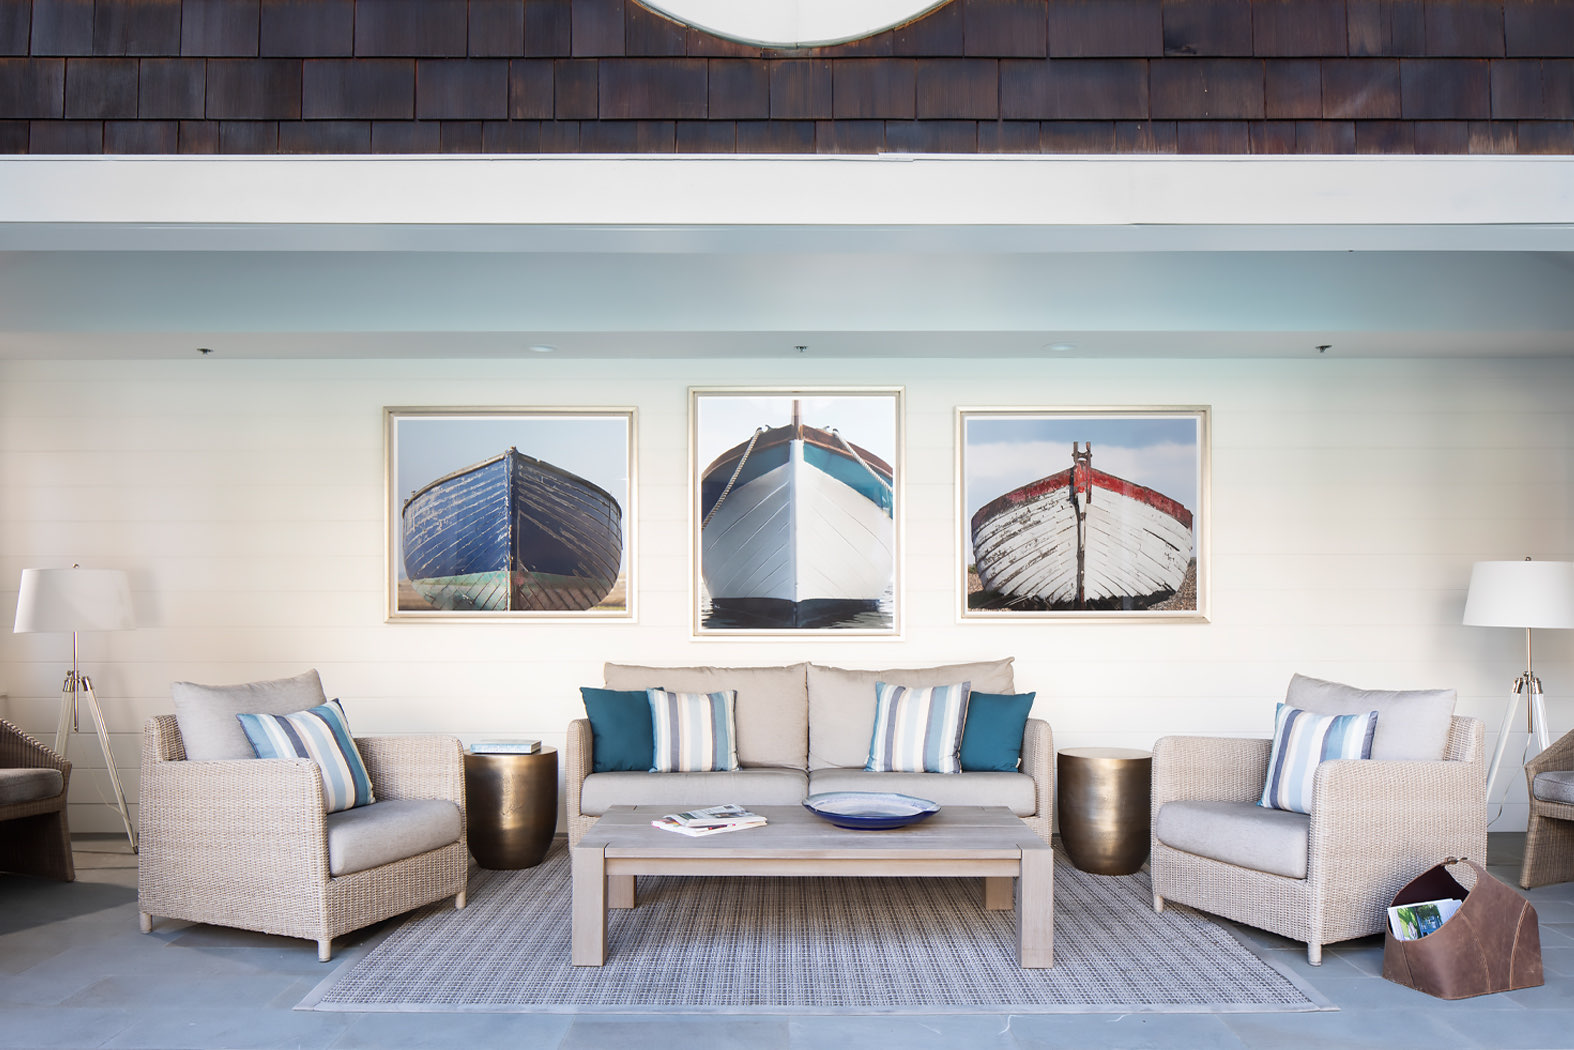 beige living room with three paintings of boats on the wall